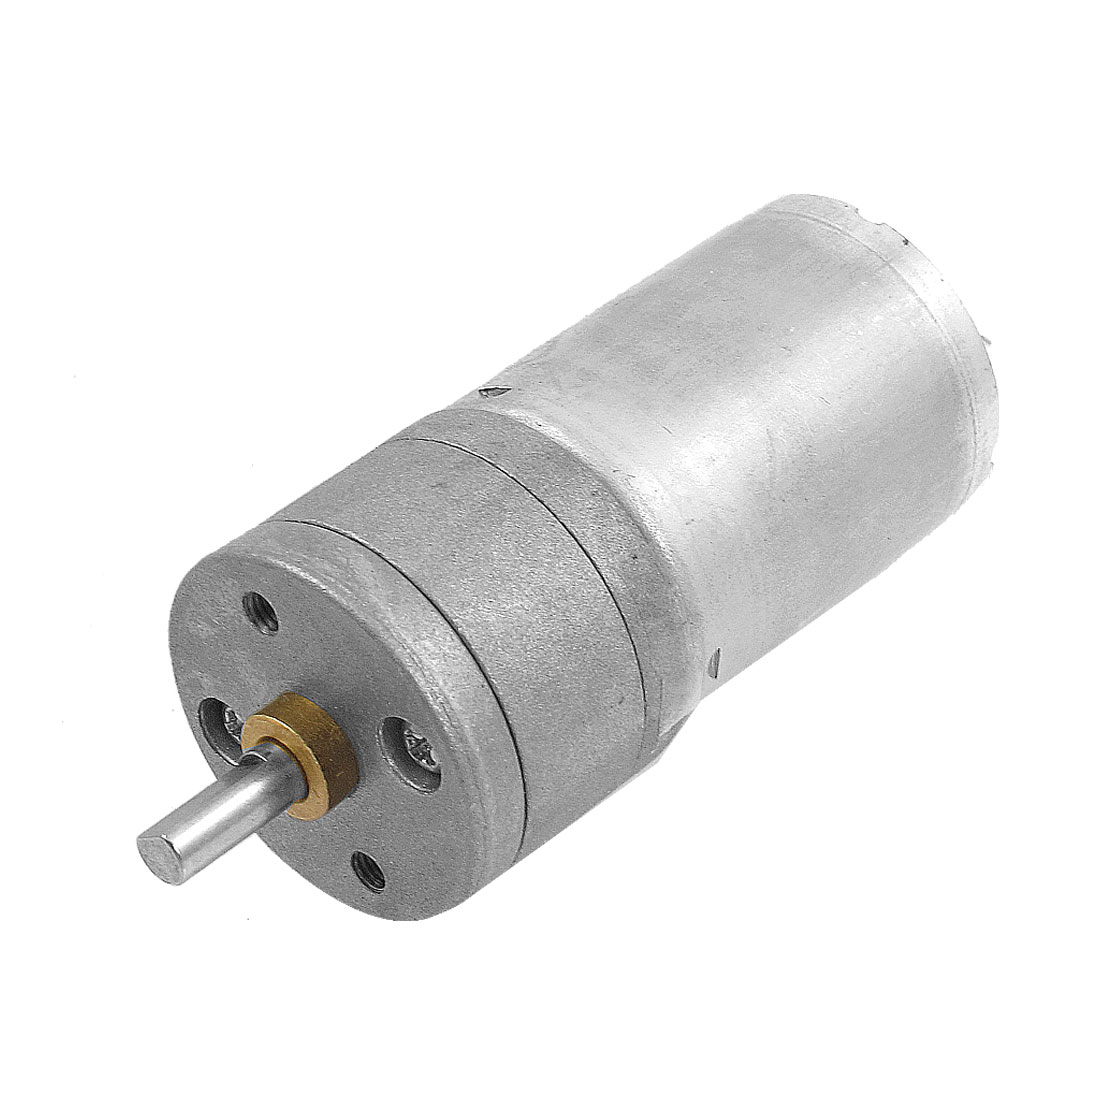 4mm Dia Output Shaft 6V 0.6A 200RPM DC Geared Speed Reducing Motor